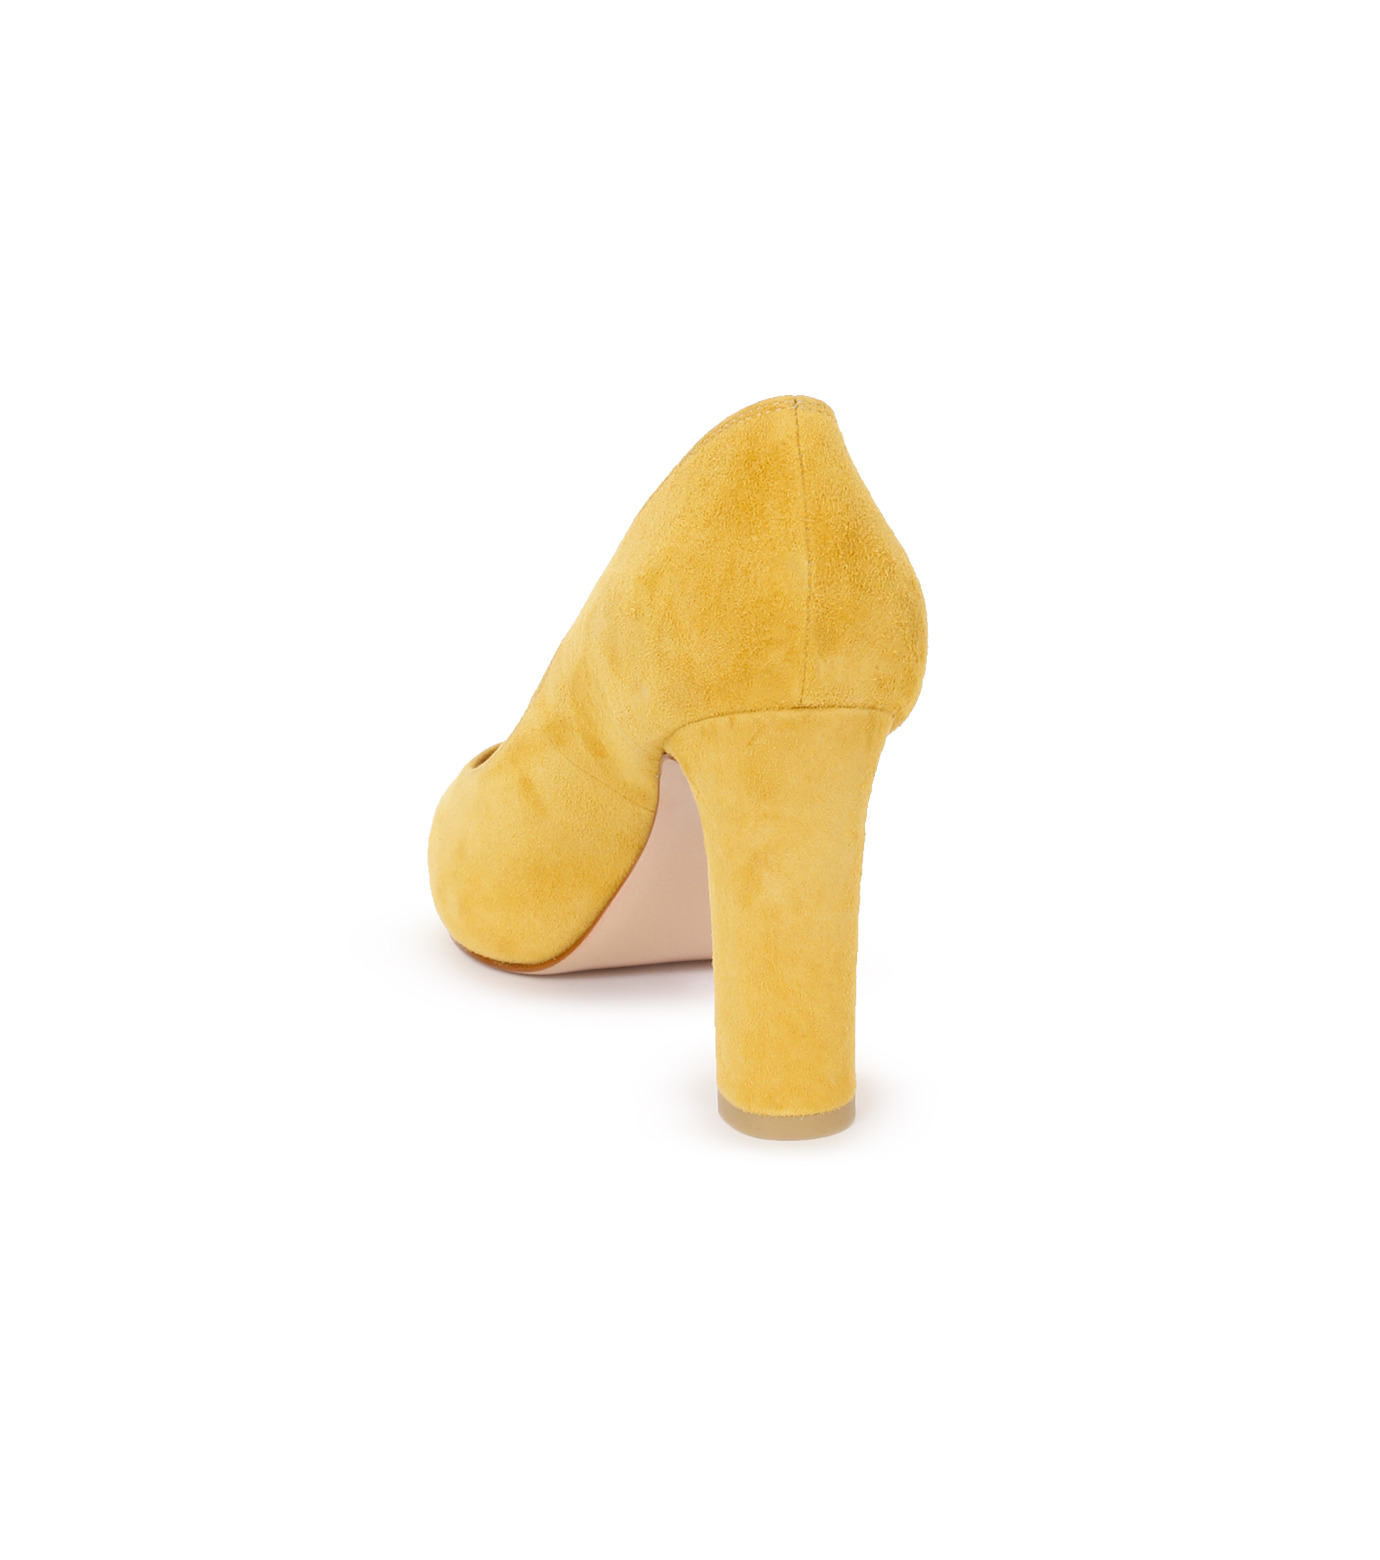 PIPPICHIC(ピッピシック)のInstorm Round Toe Pumps-YELLOW(パンプス/pumps)-PP16-IRP26-L 拡大詳細画像3